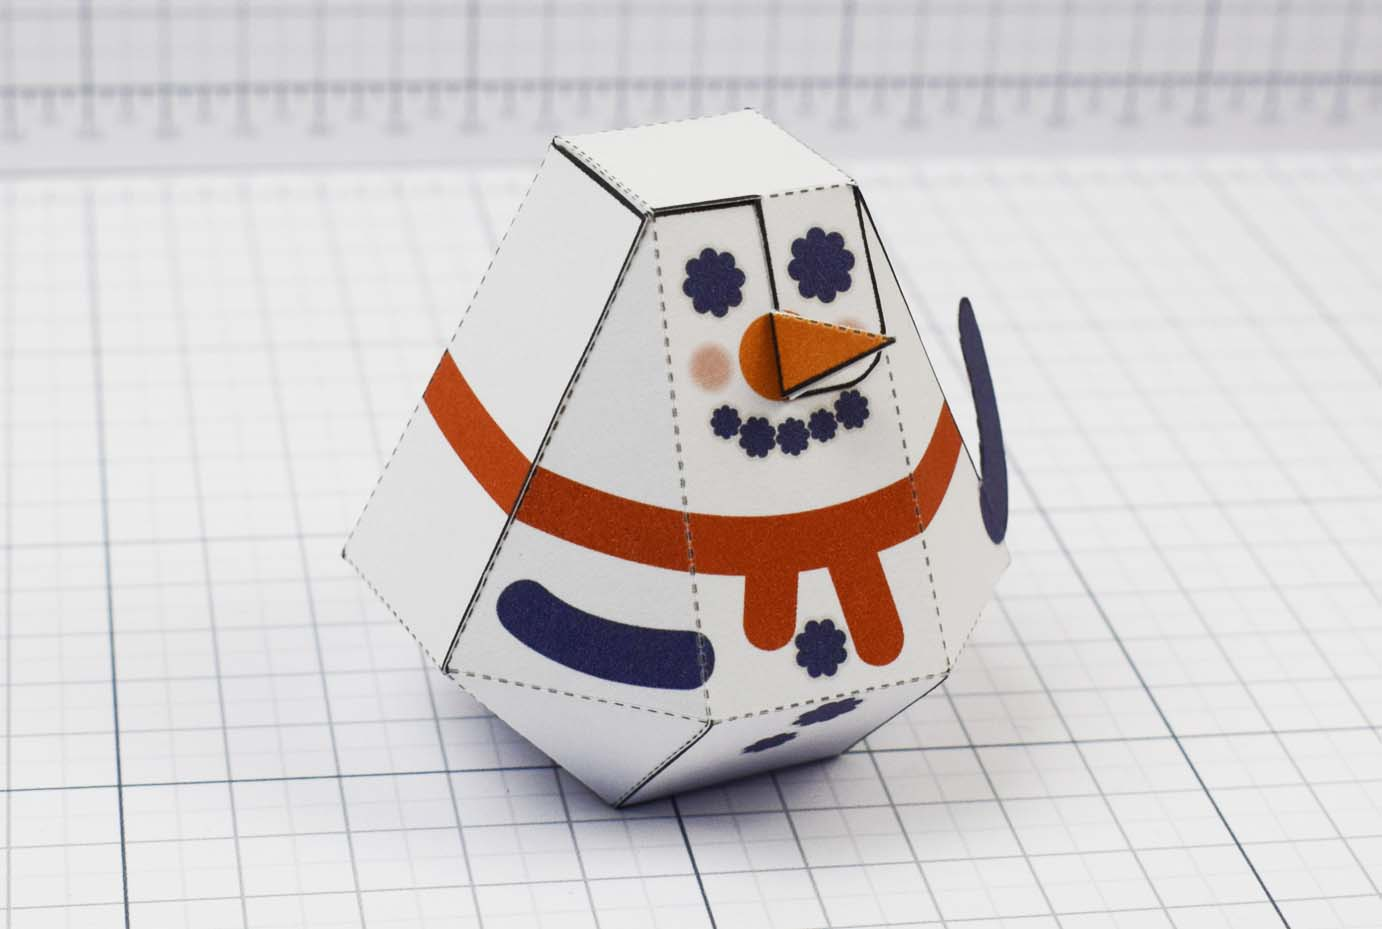 PTI - Christmas Paper Toy Craft Decoration - Slowblow Image - Main